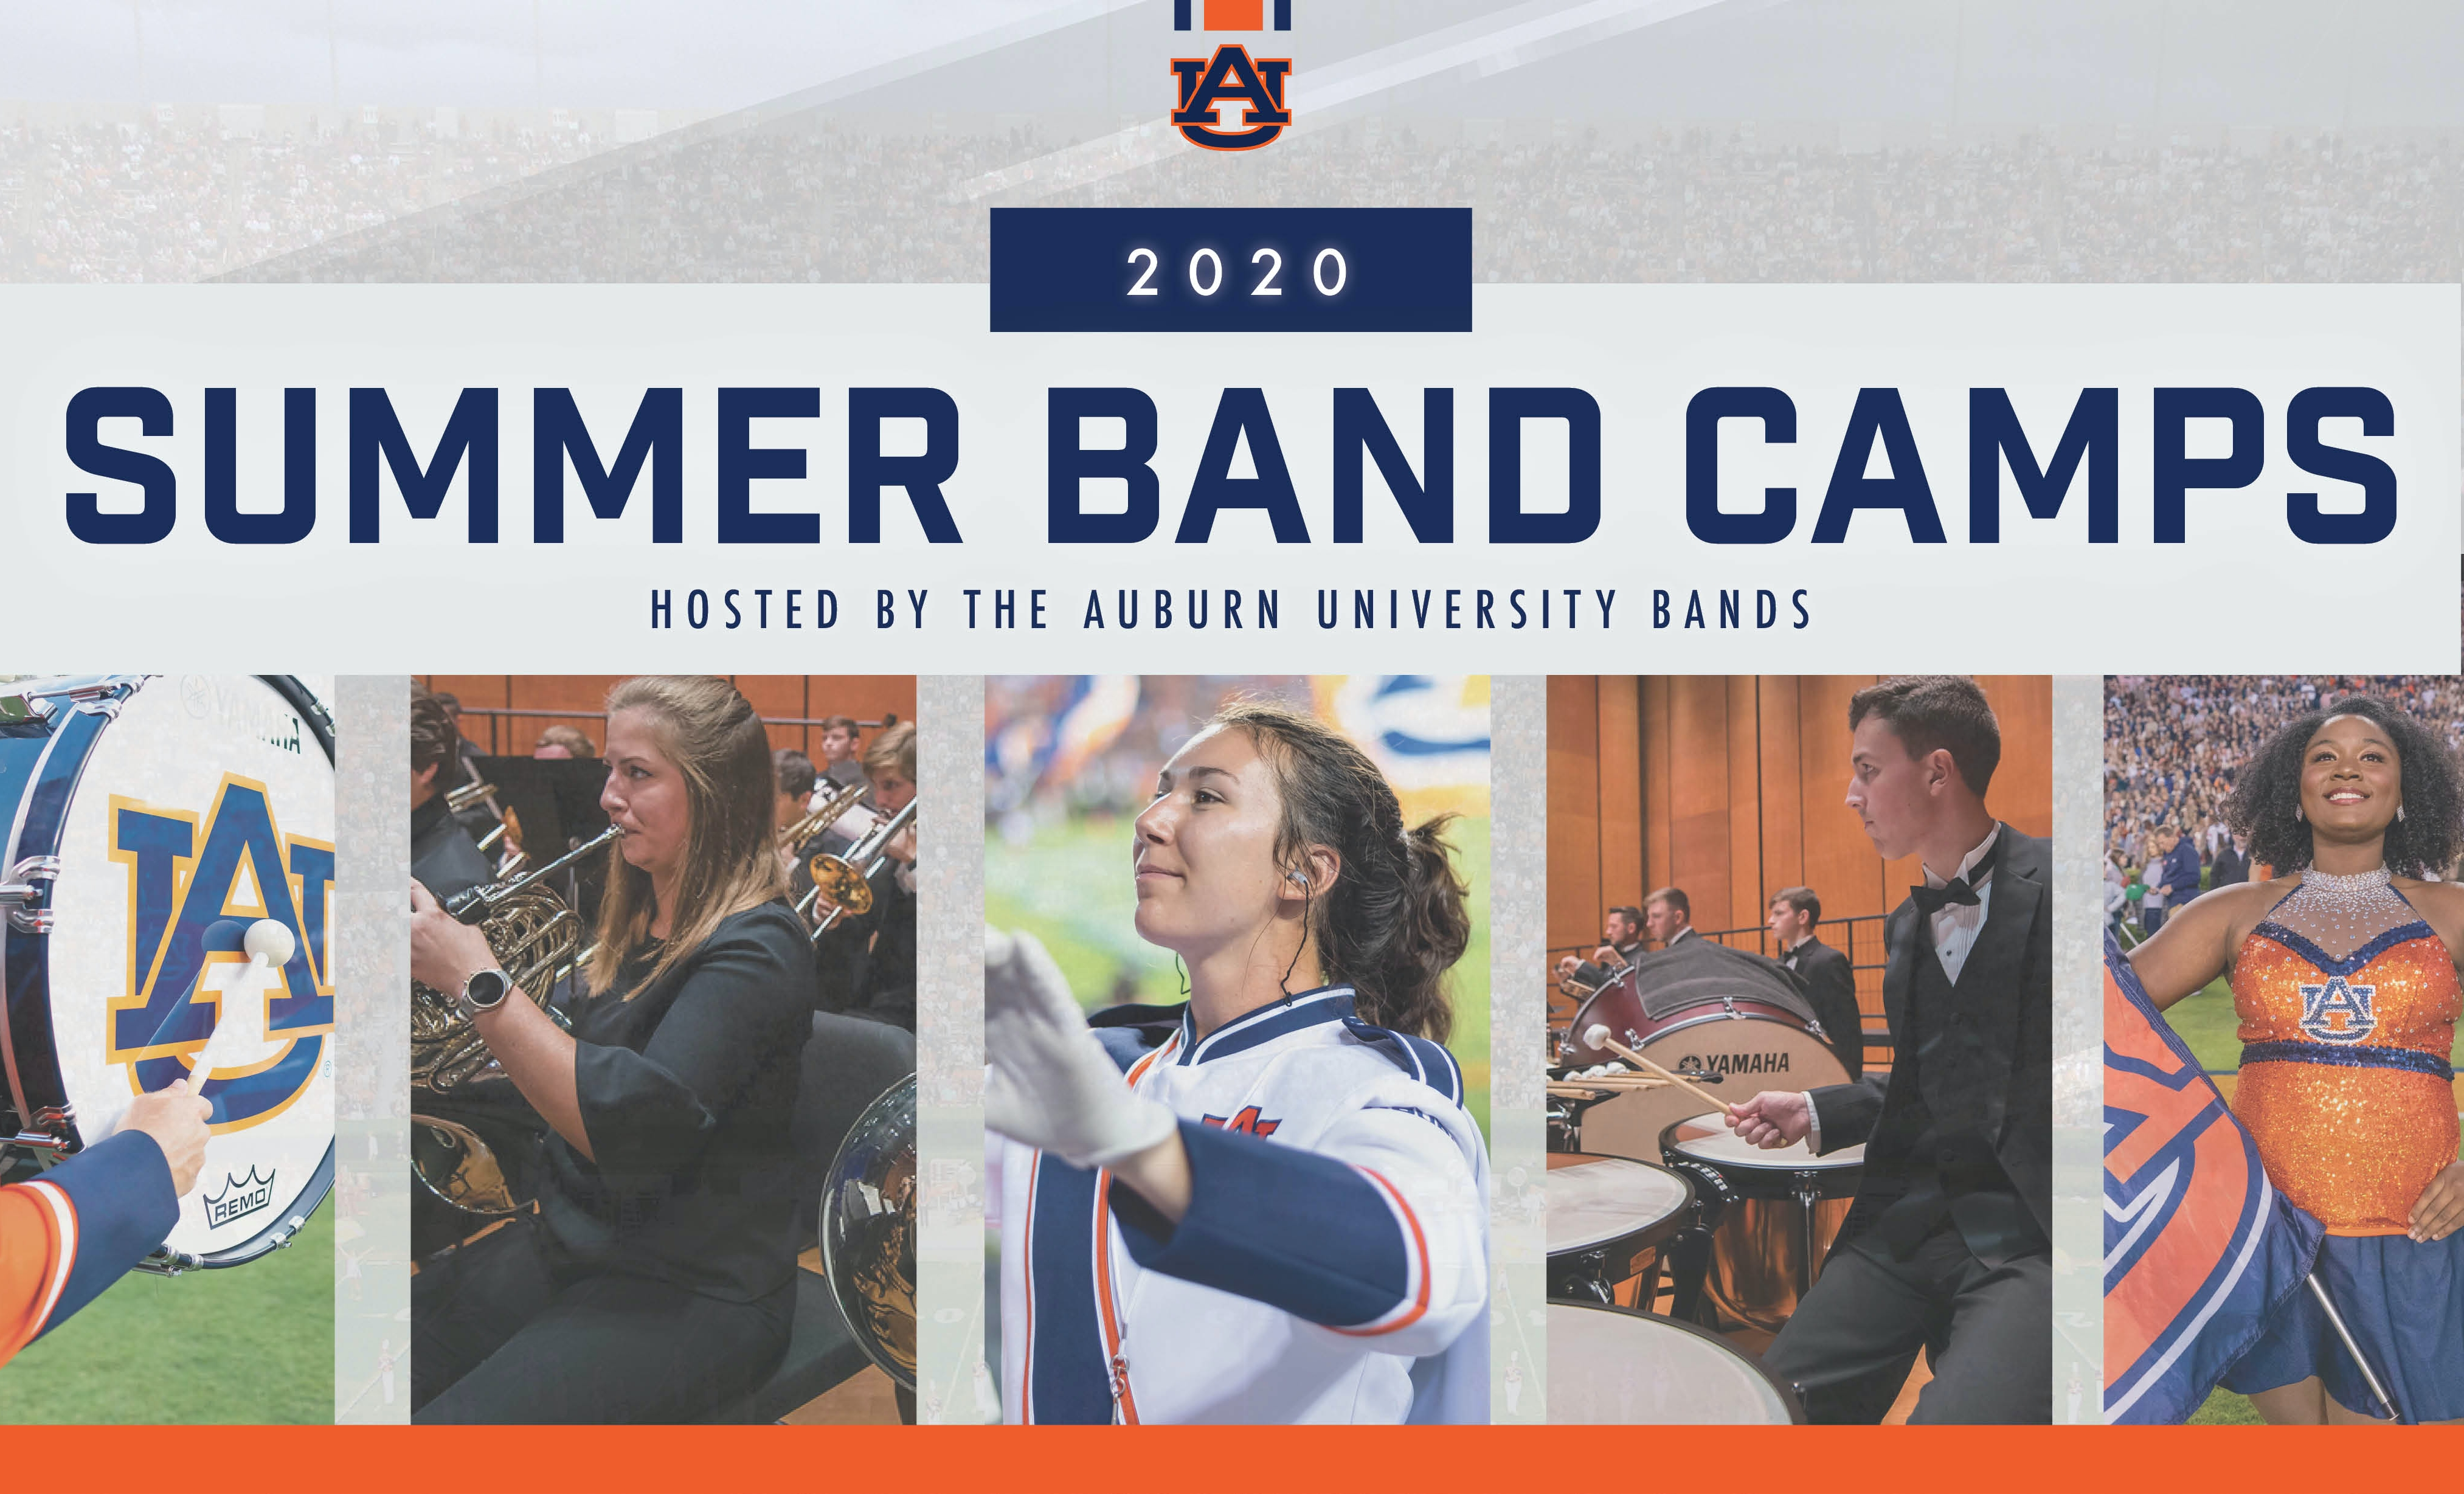 Summer Band Camps 2020